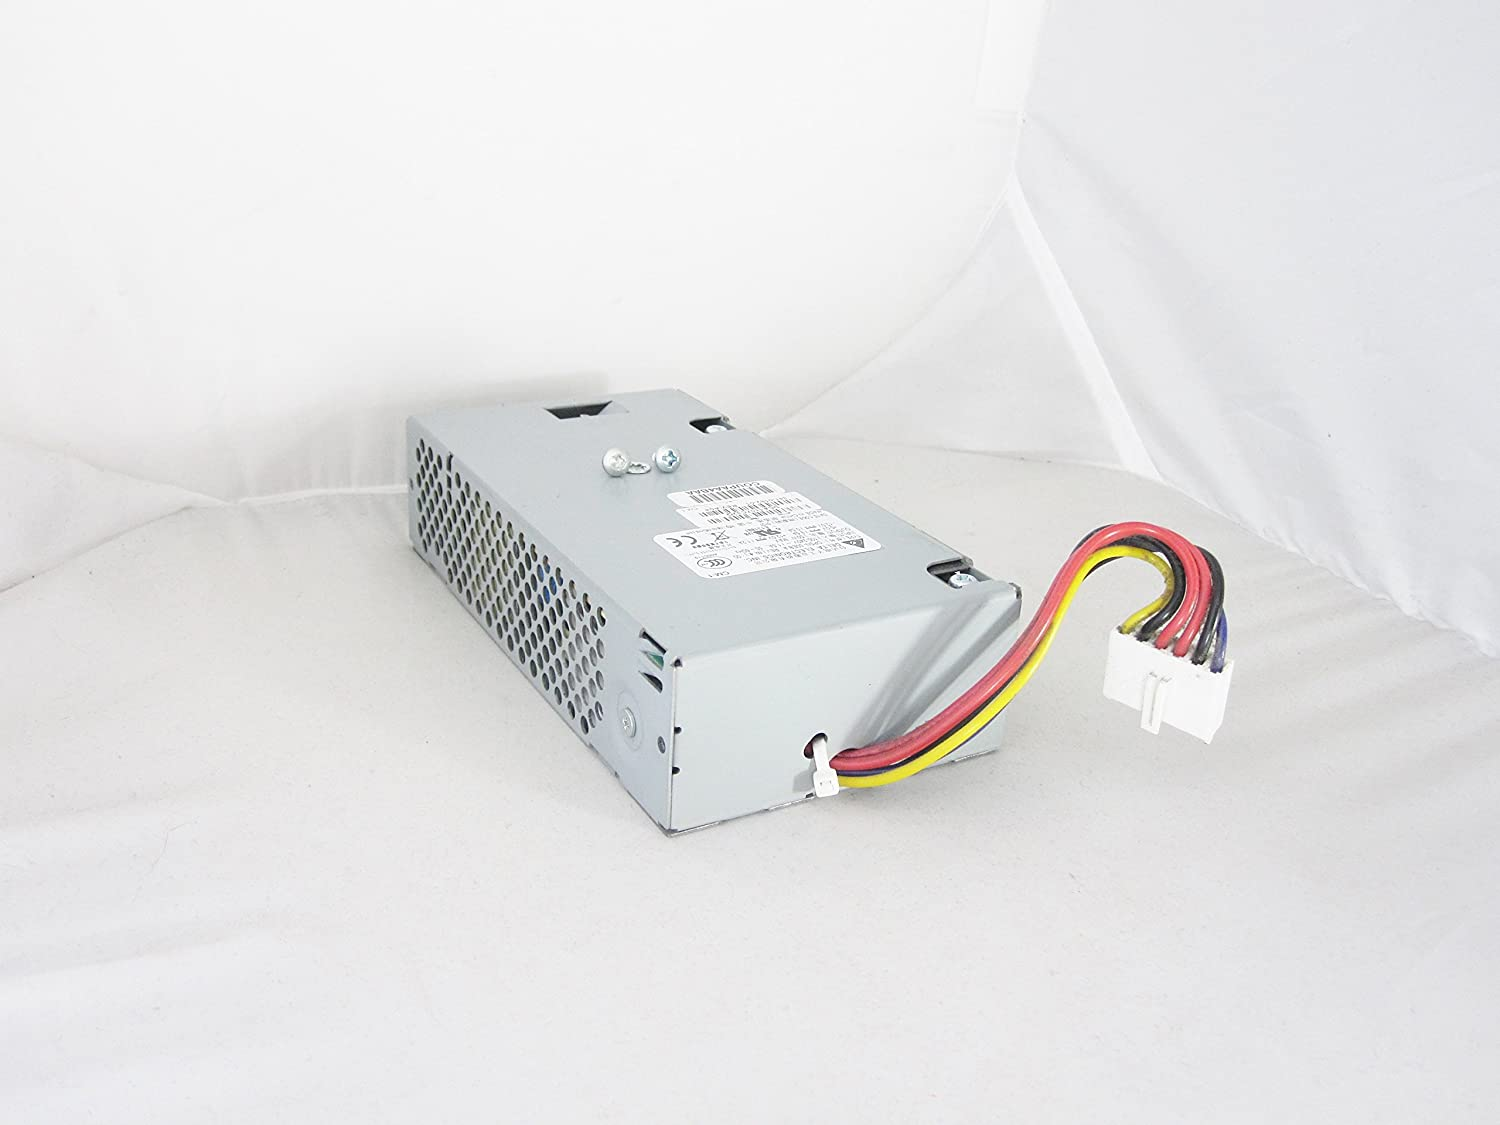 Cisco Router Astec AA21430 34-1609-02 50W Power Supply